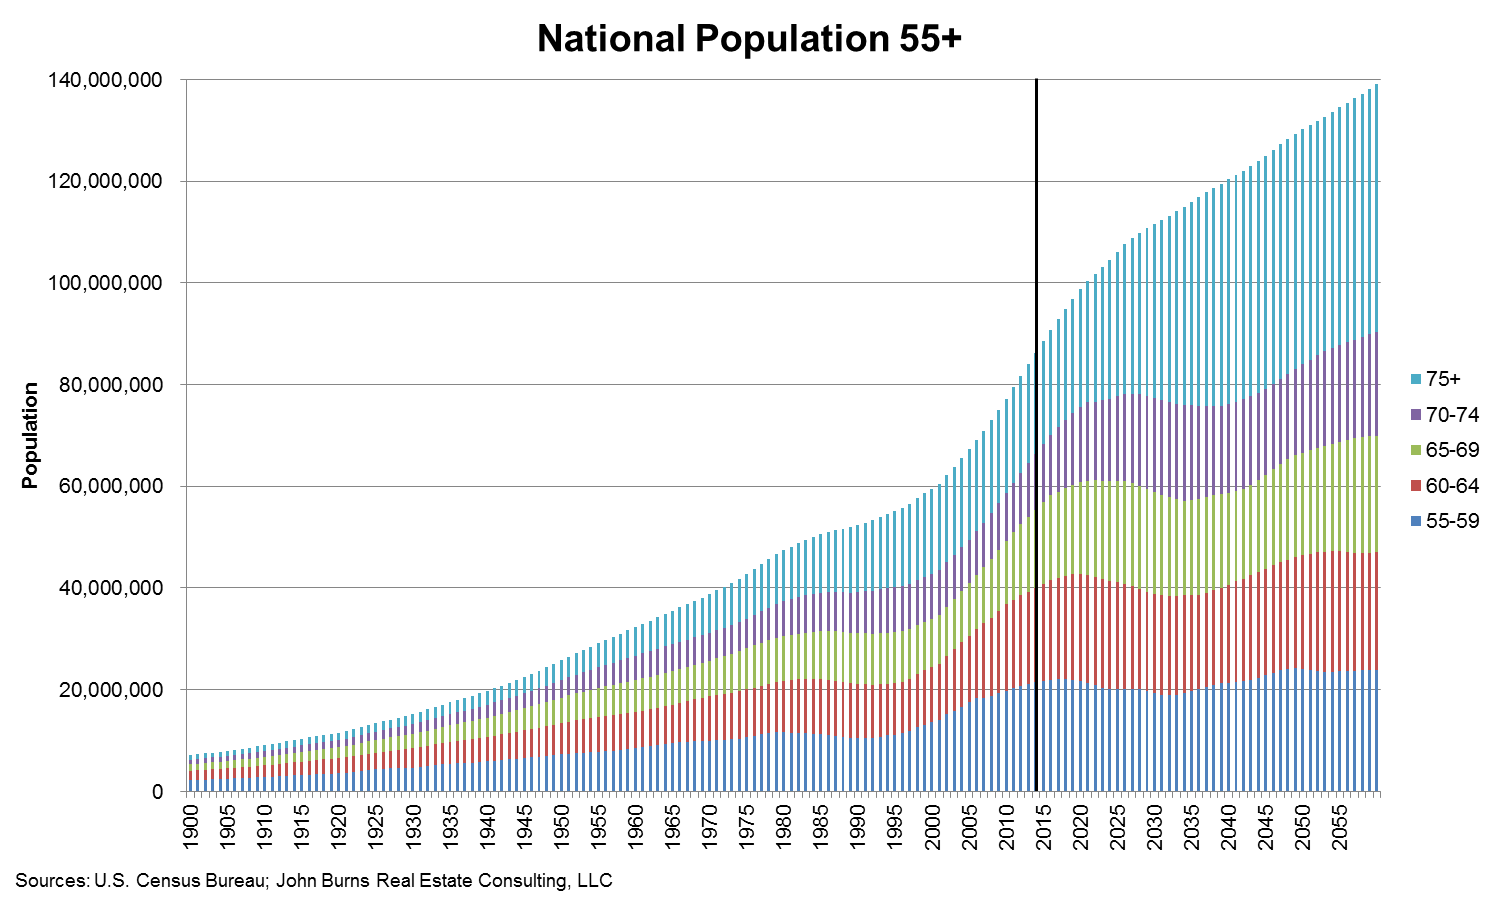 National_Population_55andOver